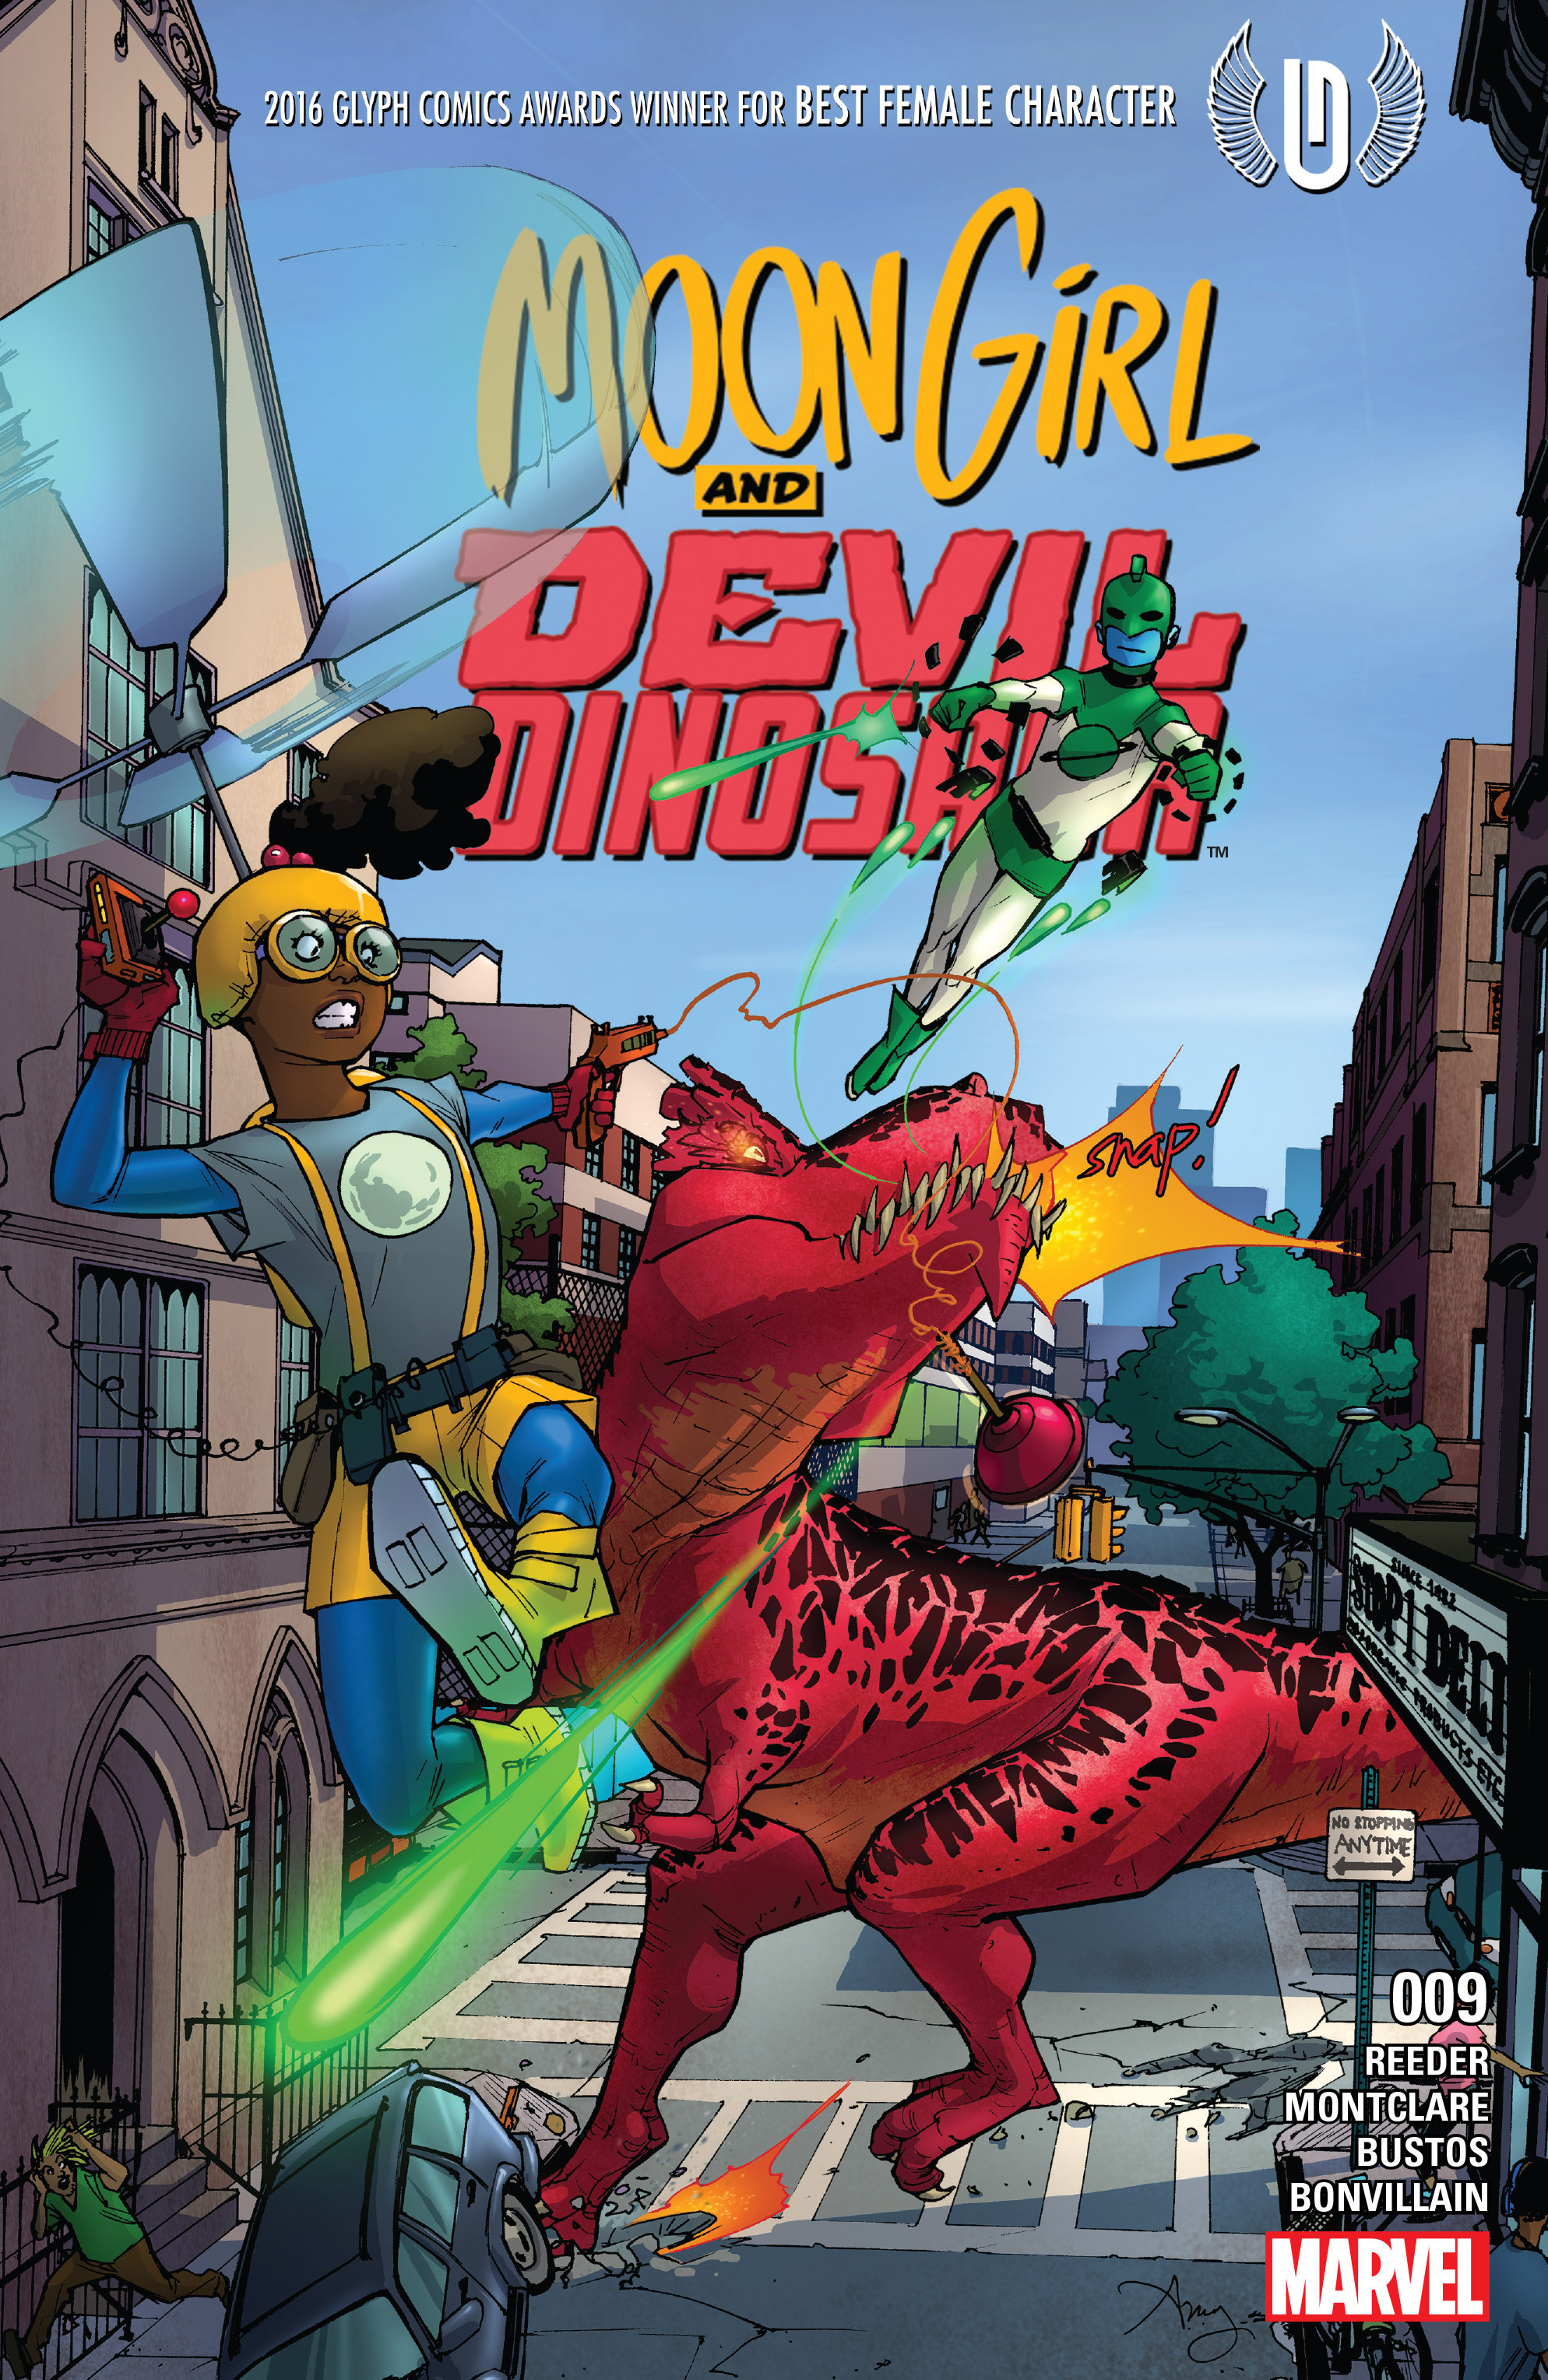 Moon Girl and Devil Dinosaur #09